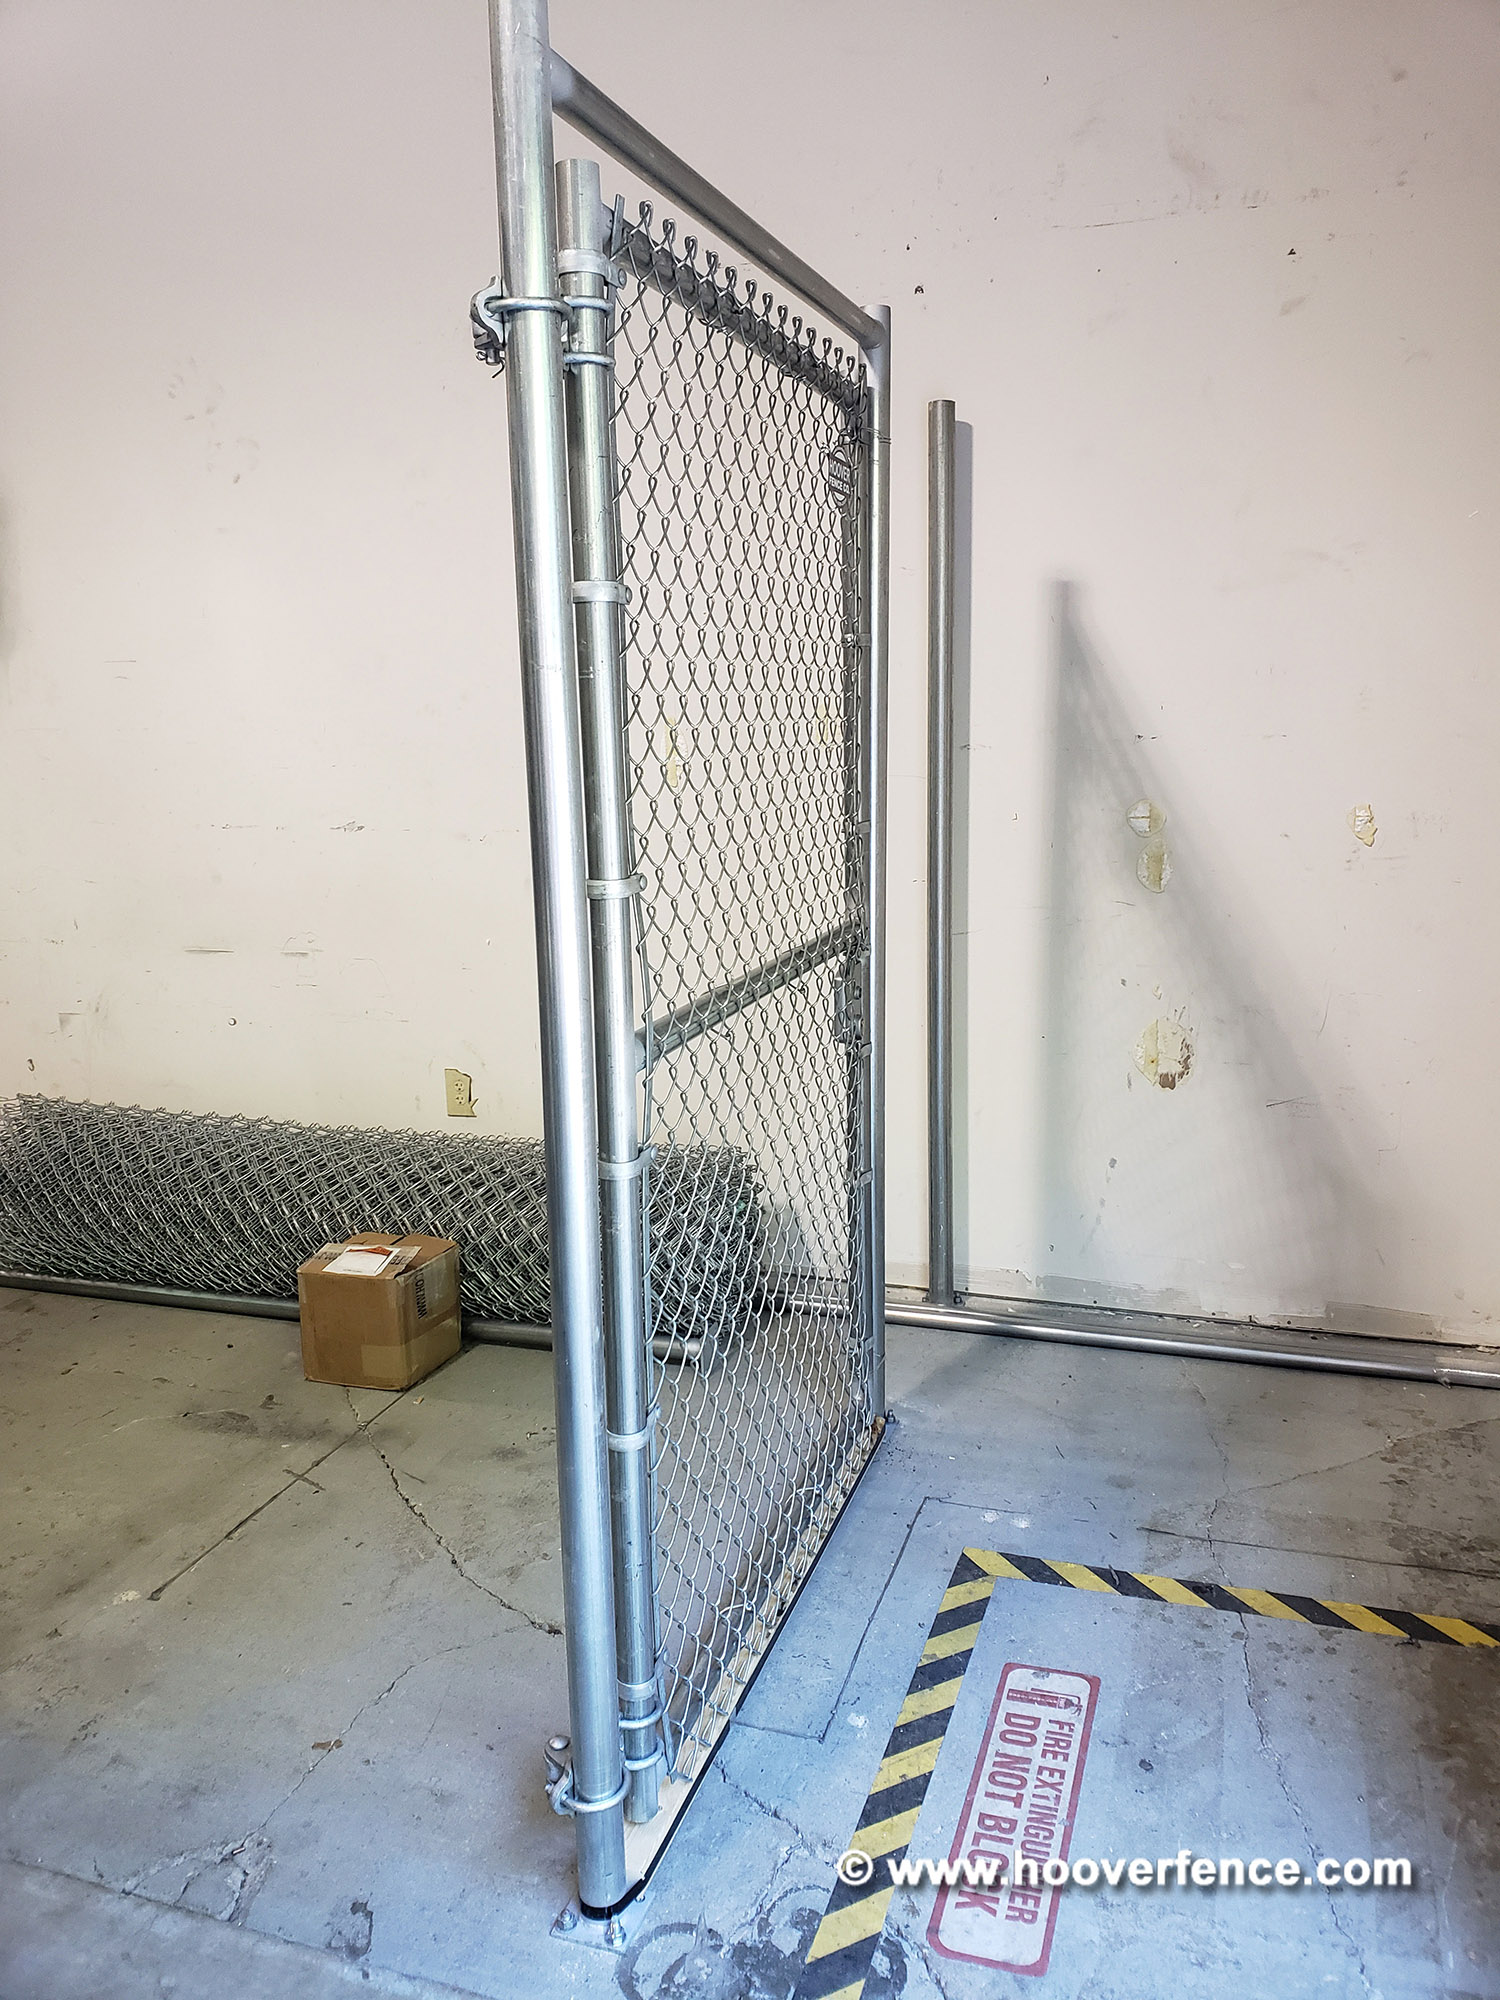 Indoor Chain Link Storage Cage Installation with Pre-Hung Chain Link Gate